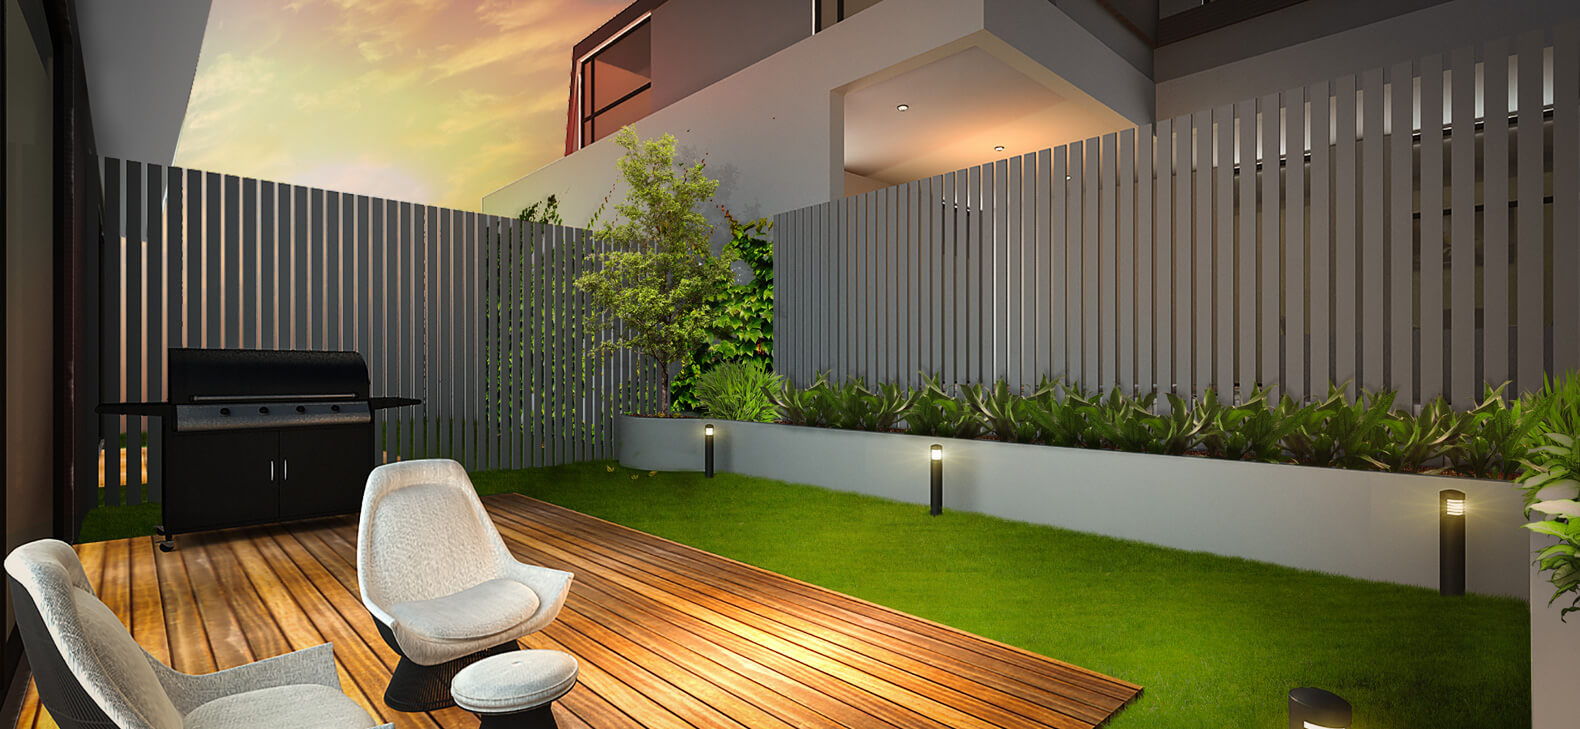 3D Rendering Services in kerala